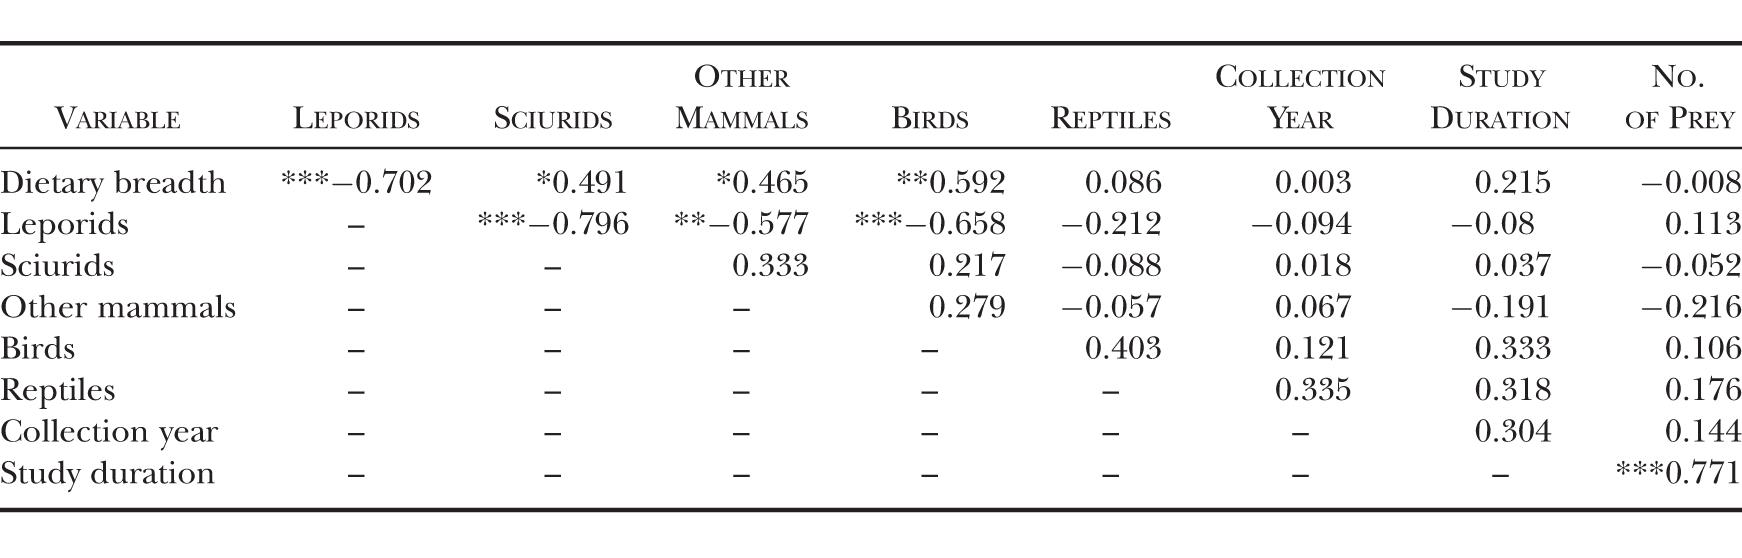 Spatial and Temporal Patterns in Golden Eagle Diets in the Western